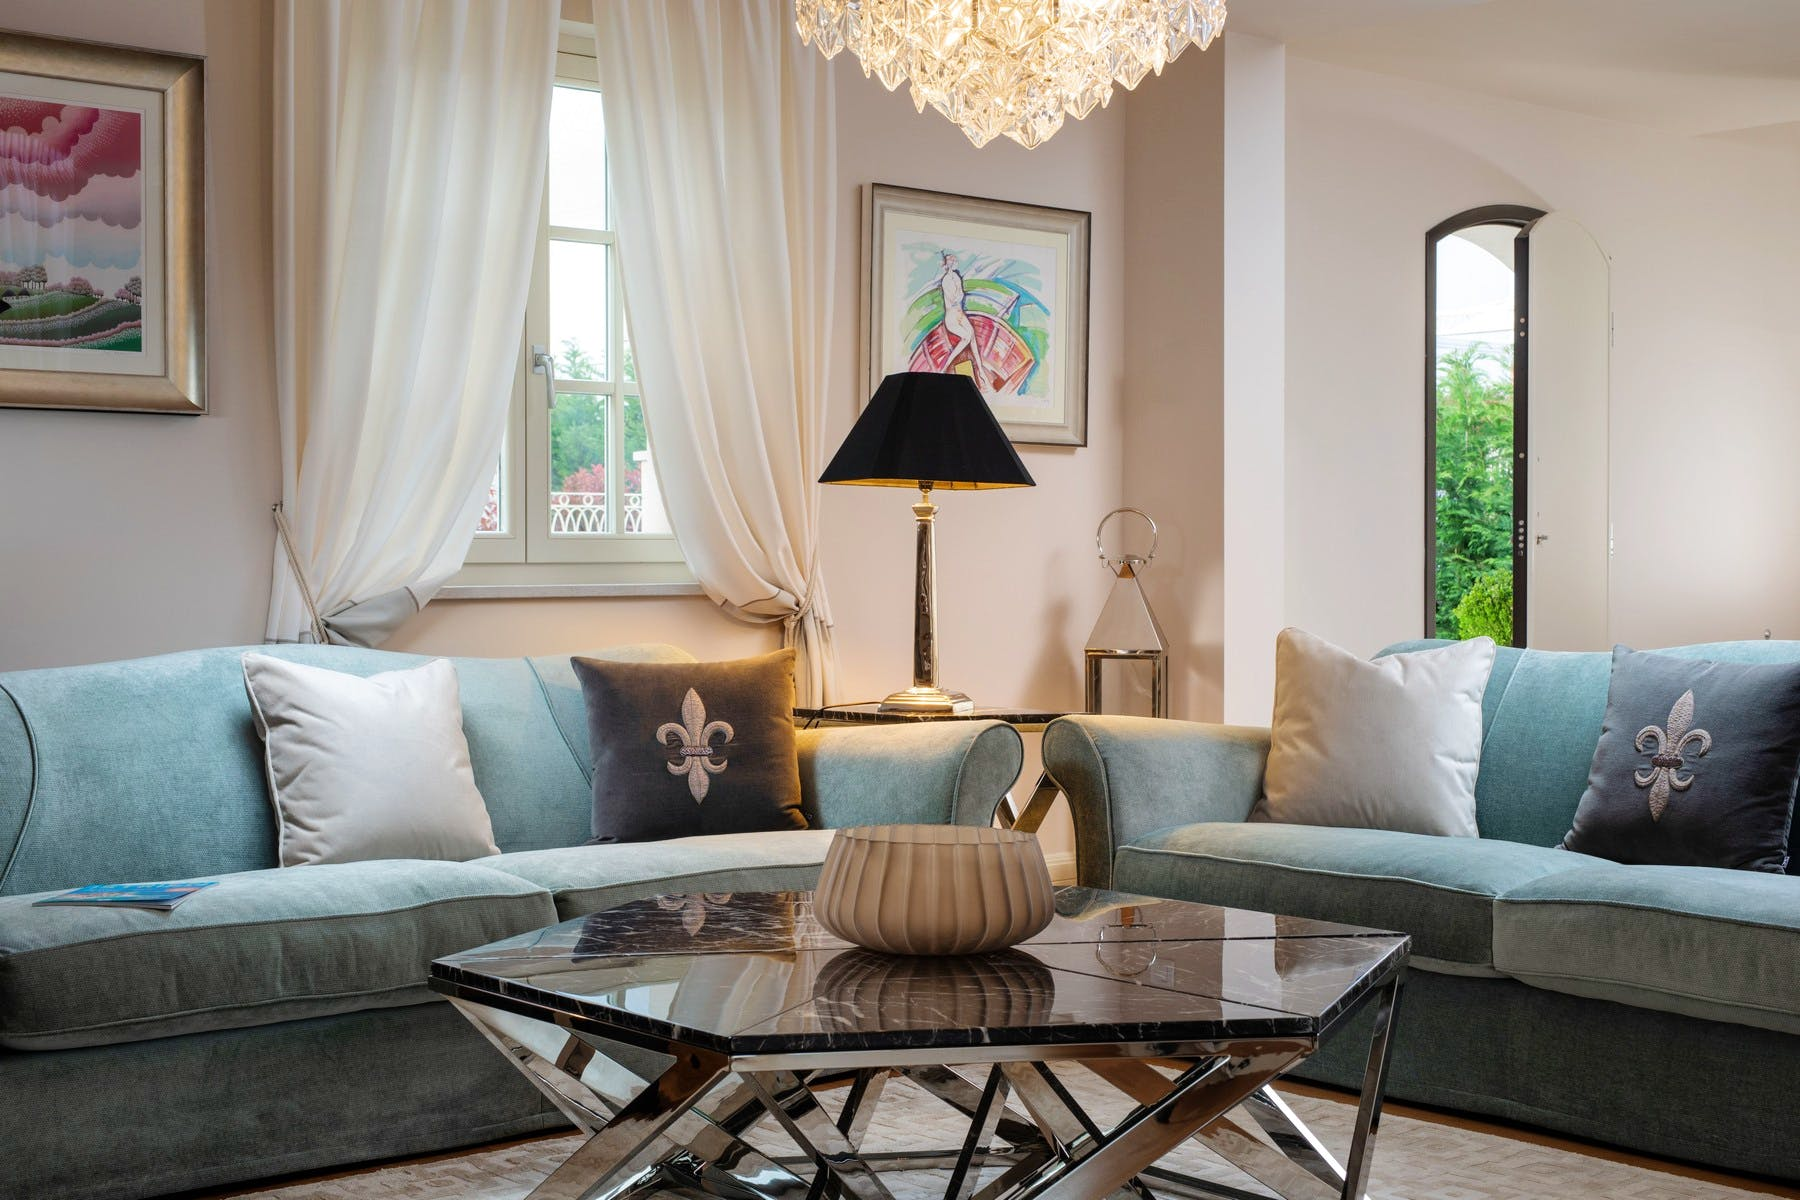 Interior design styling with art deco elements